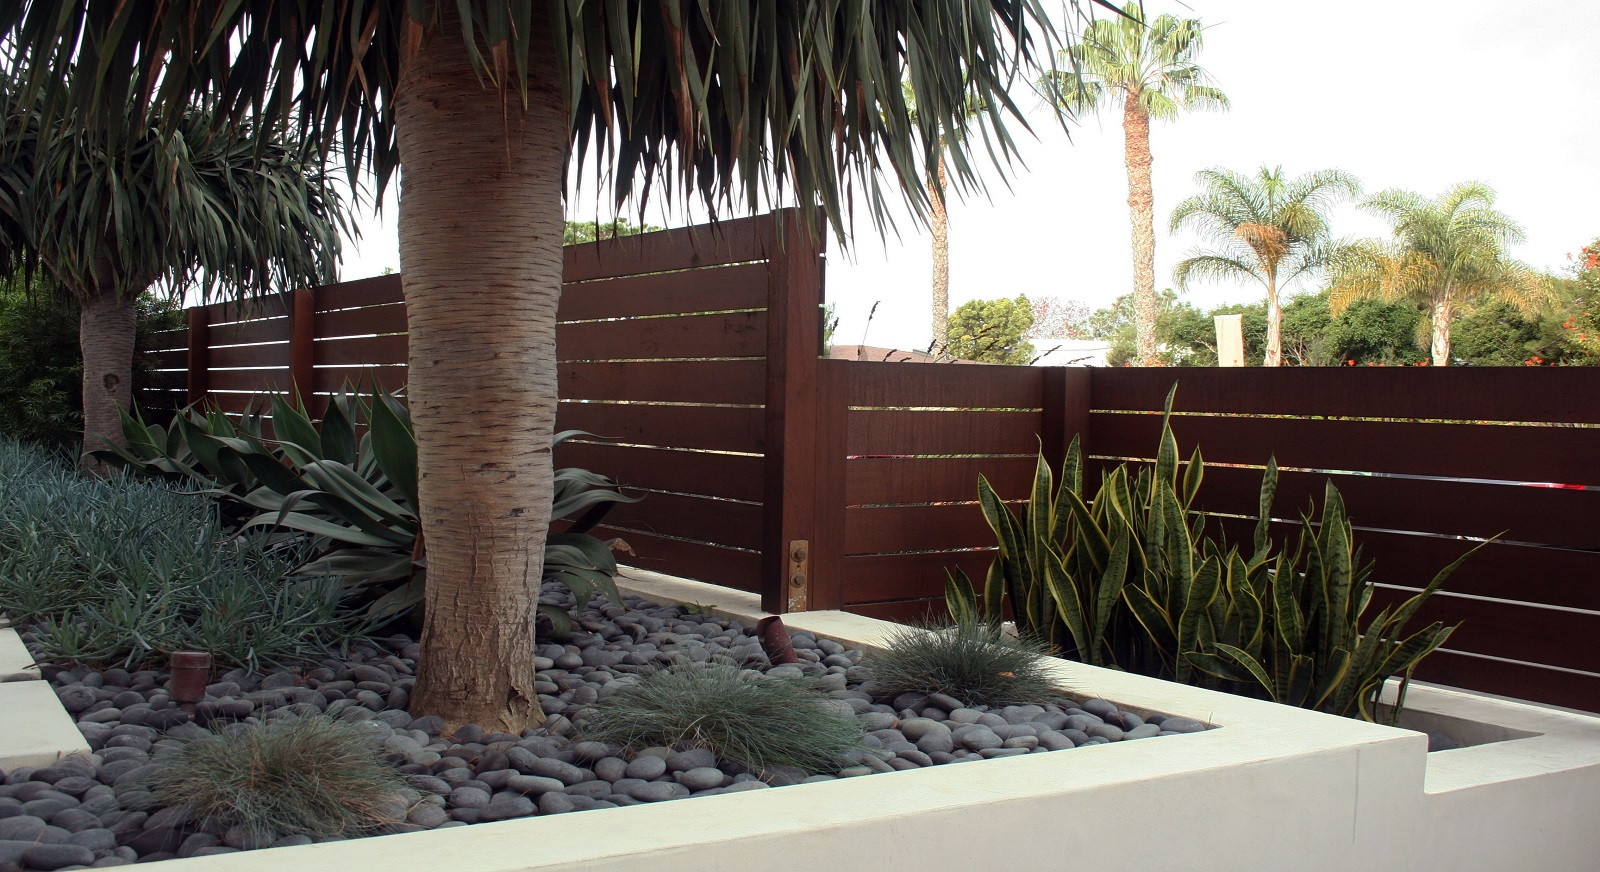 cross construction remodel landscape fence retaining wall